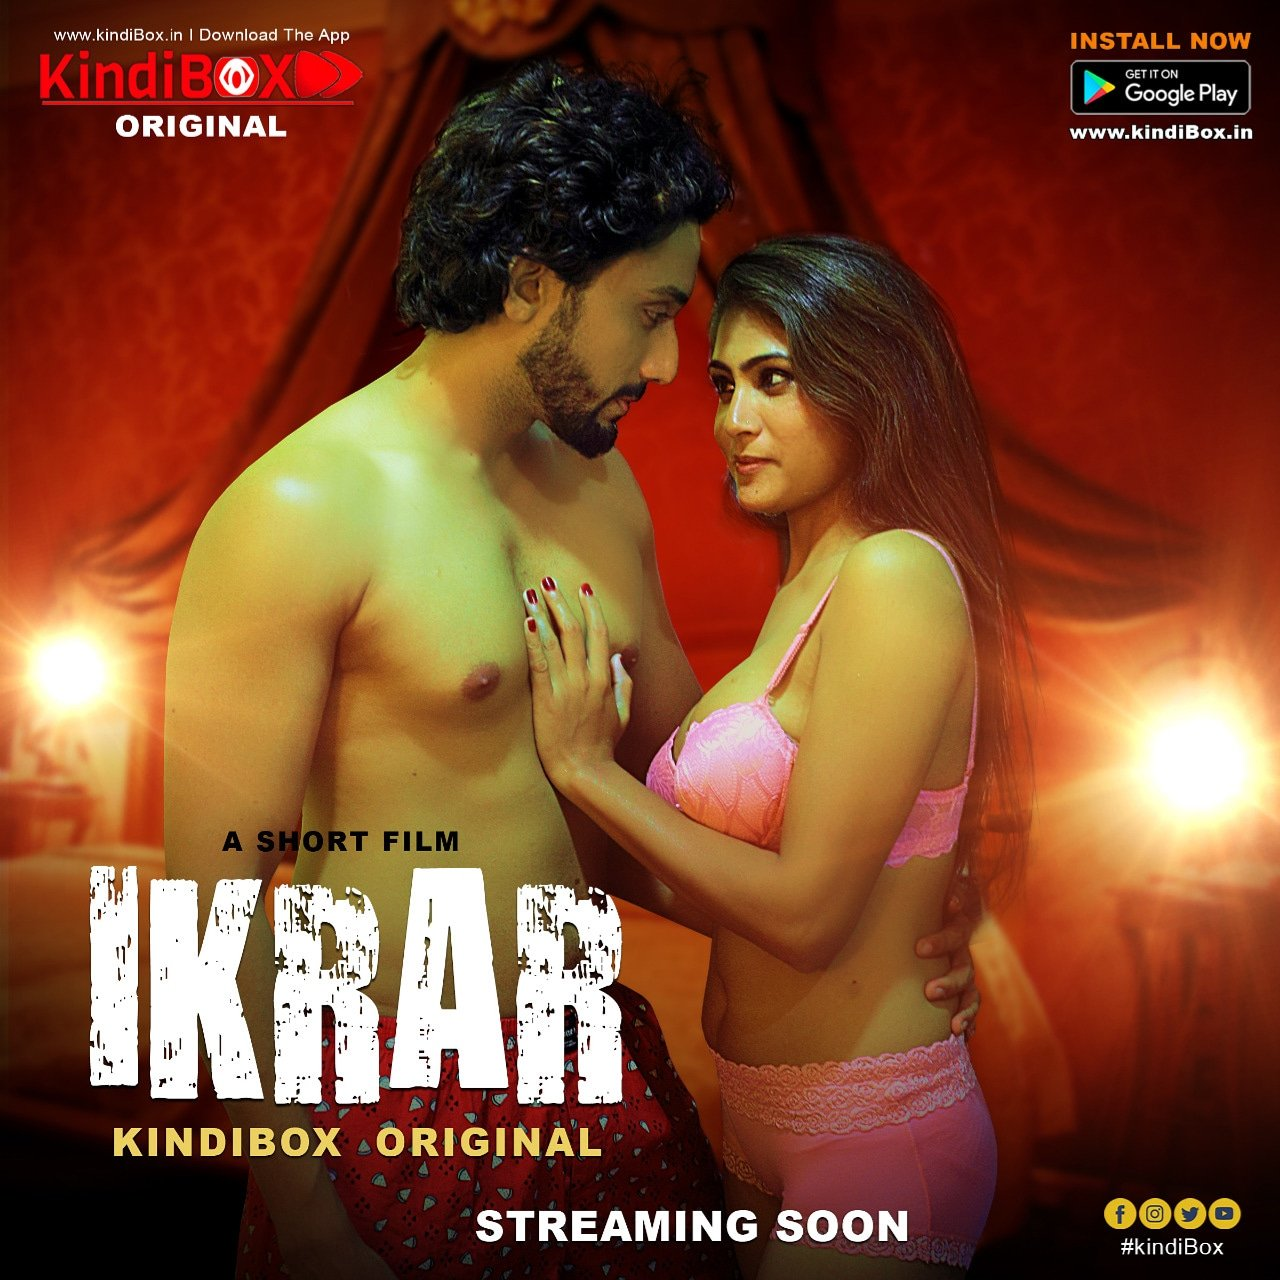 Ikrar 2020 S01 Hindi KindiBOX Original Web Series Official Trailer 1080p HDRip Free Download